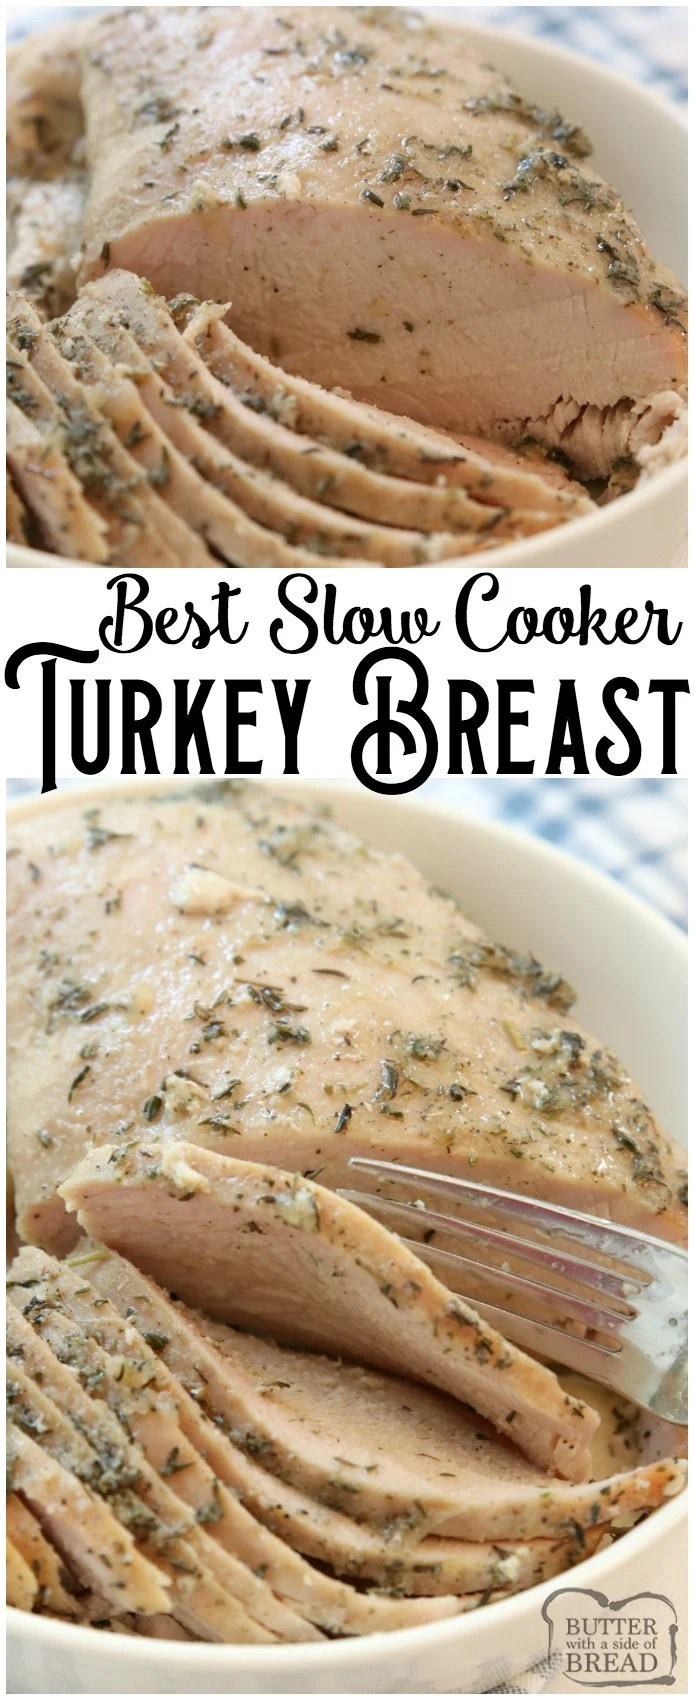 Easy Slow Cooker Turkey Breast recipe made with butter, a sliced apple and a basic mix of traditional seasonings. Crock pot turkey breast recipe perfect for any time of the year! #slowcooker #crockpot #turkey #turkeybreast #protein #recipe #dinner #food from BUTTER WITH A SIDE OF BREAD